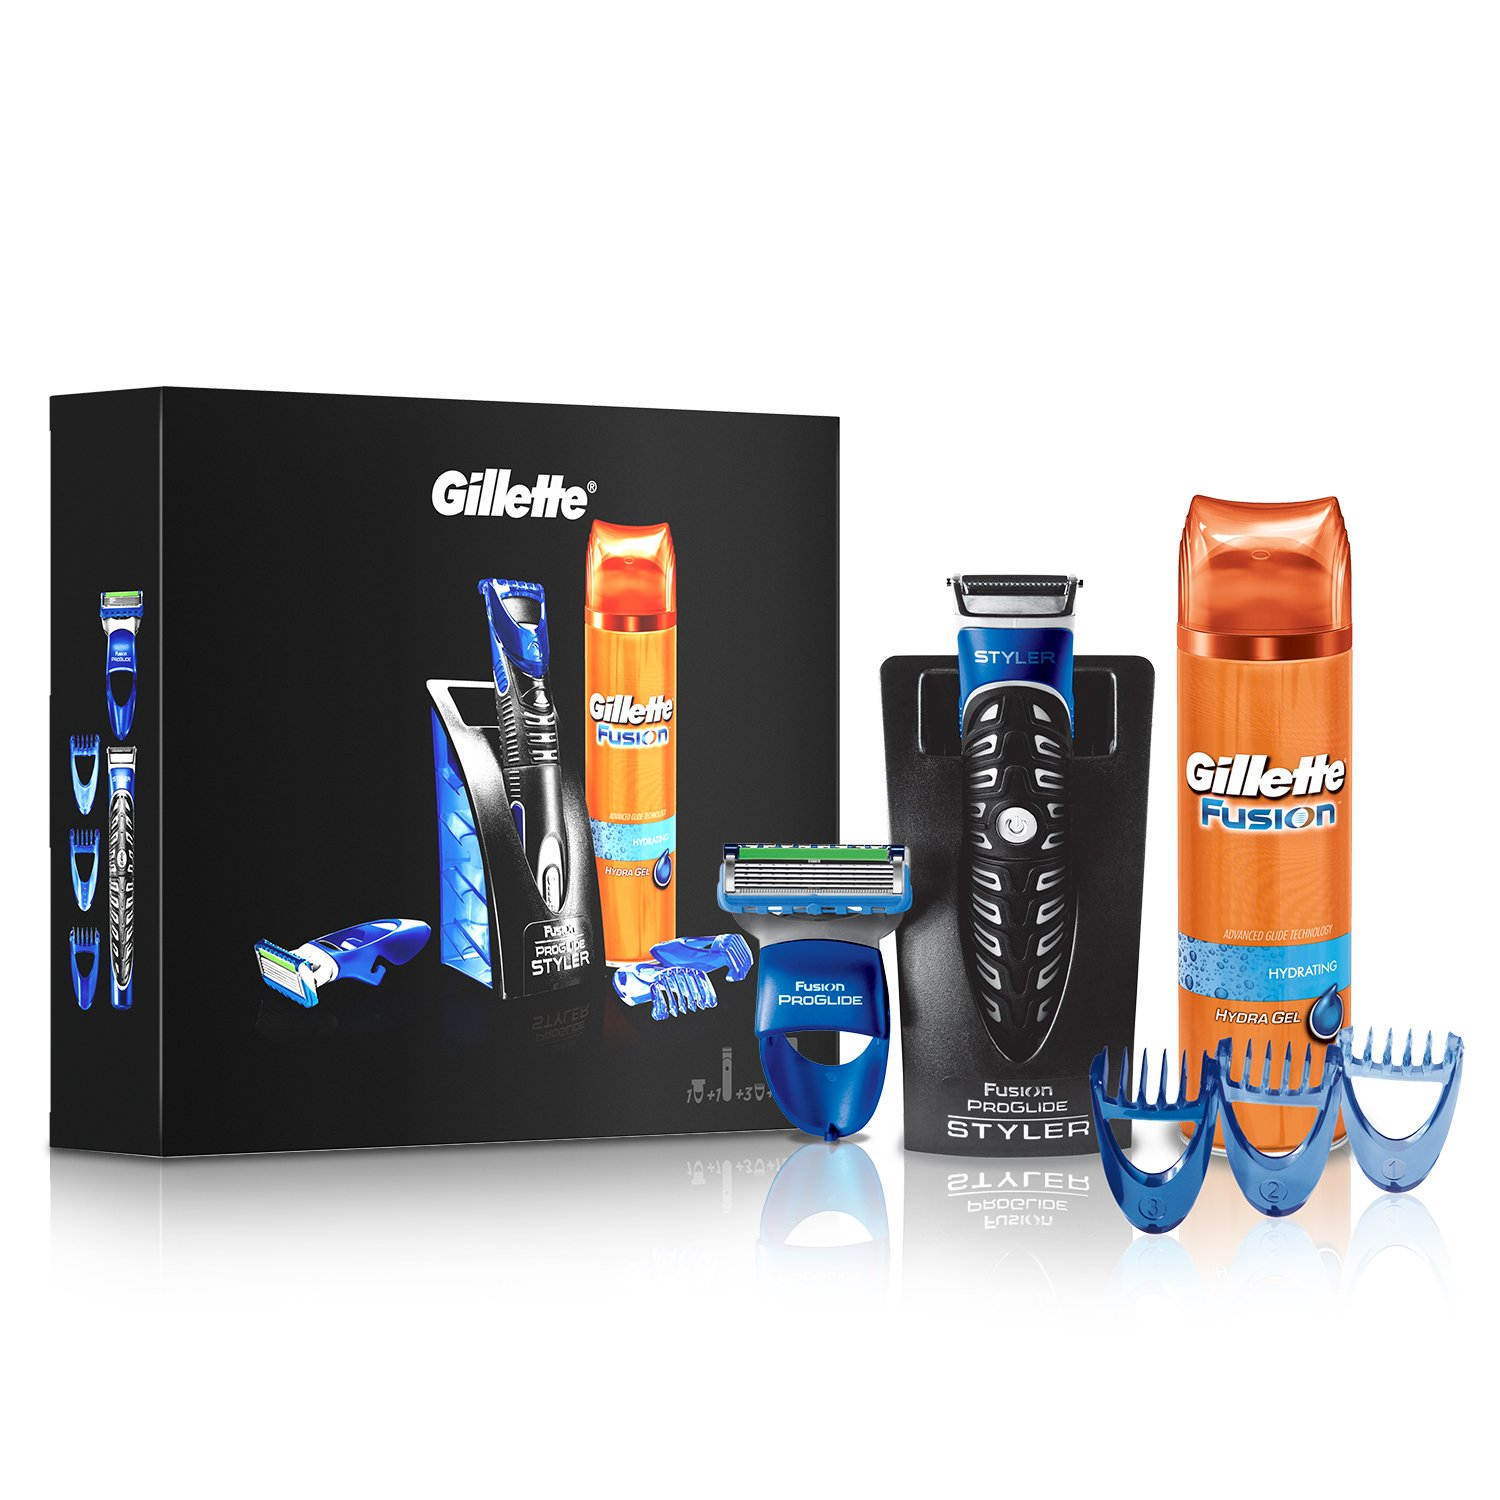 Gillette Fusion All Purpose Men's Styler Gift Set, Fusion Hydrating Men's Shaving Gel + 3 Combs Procter & Gamble 81650716